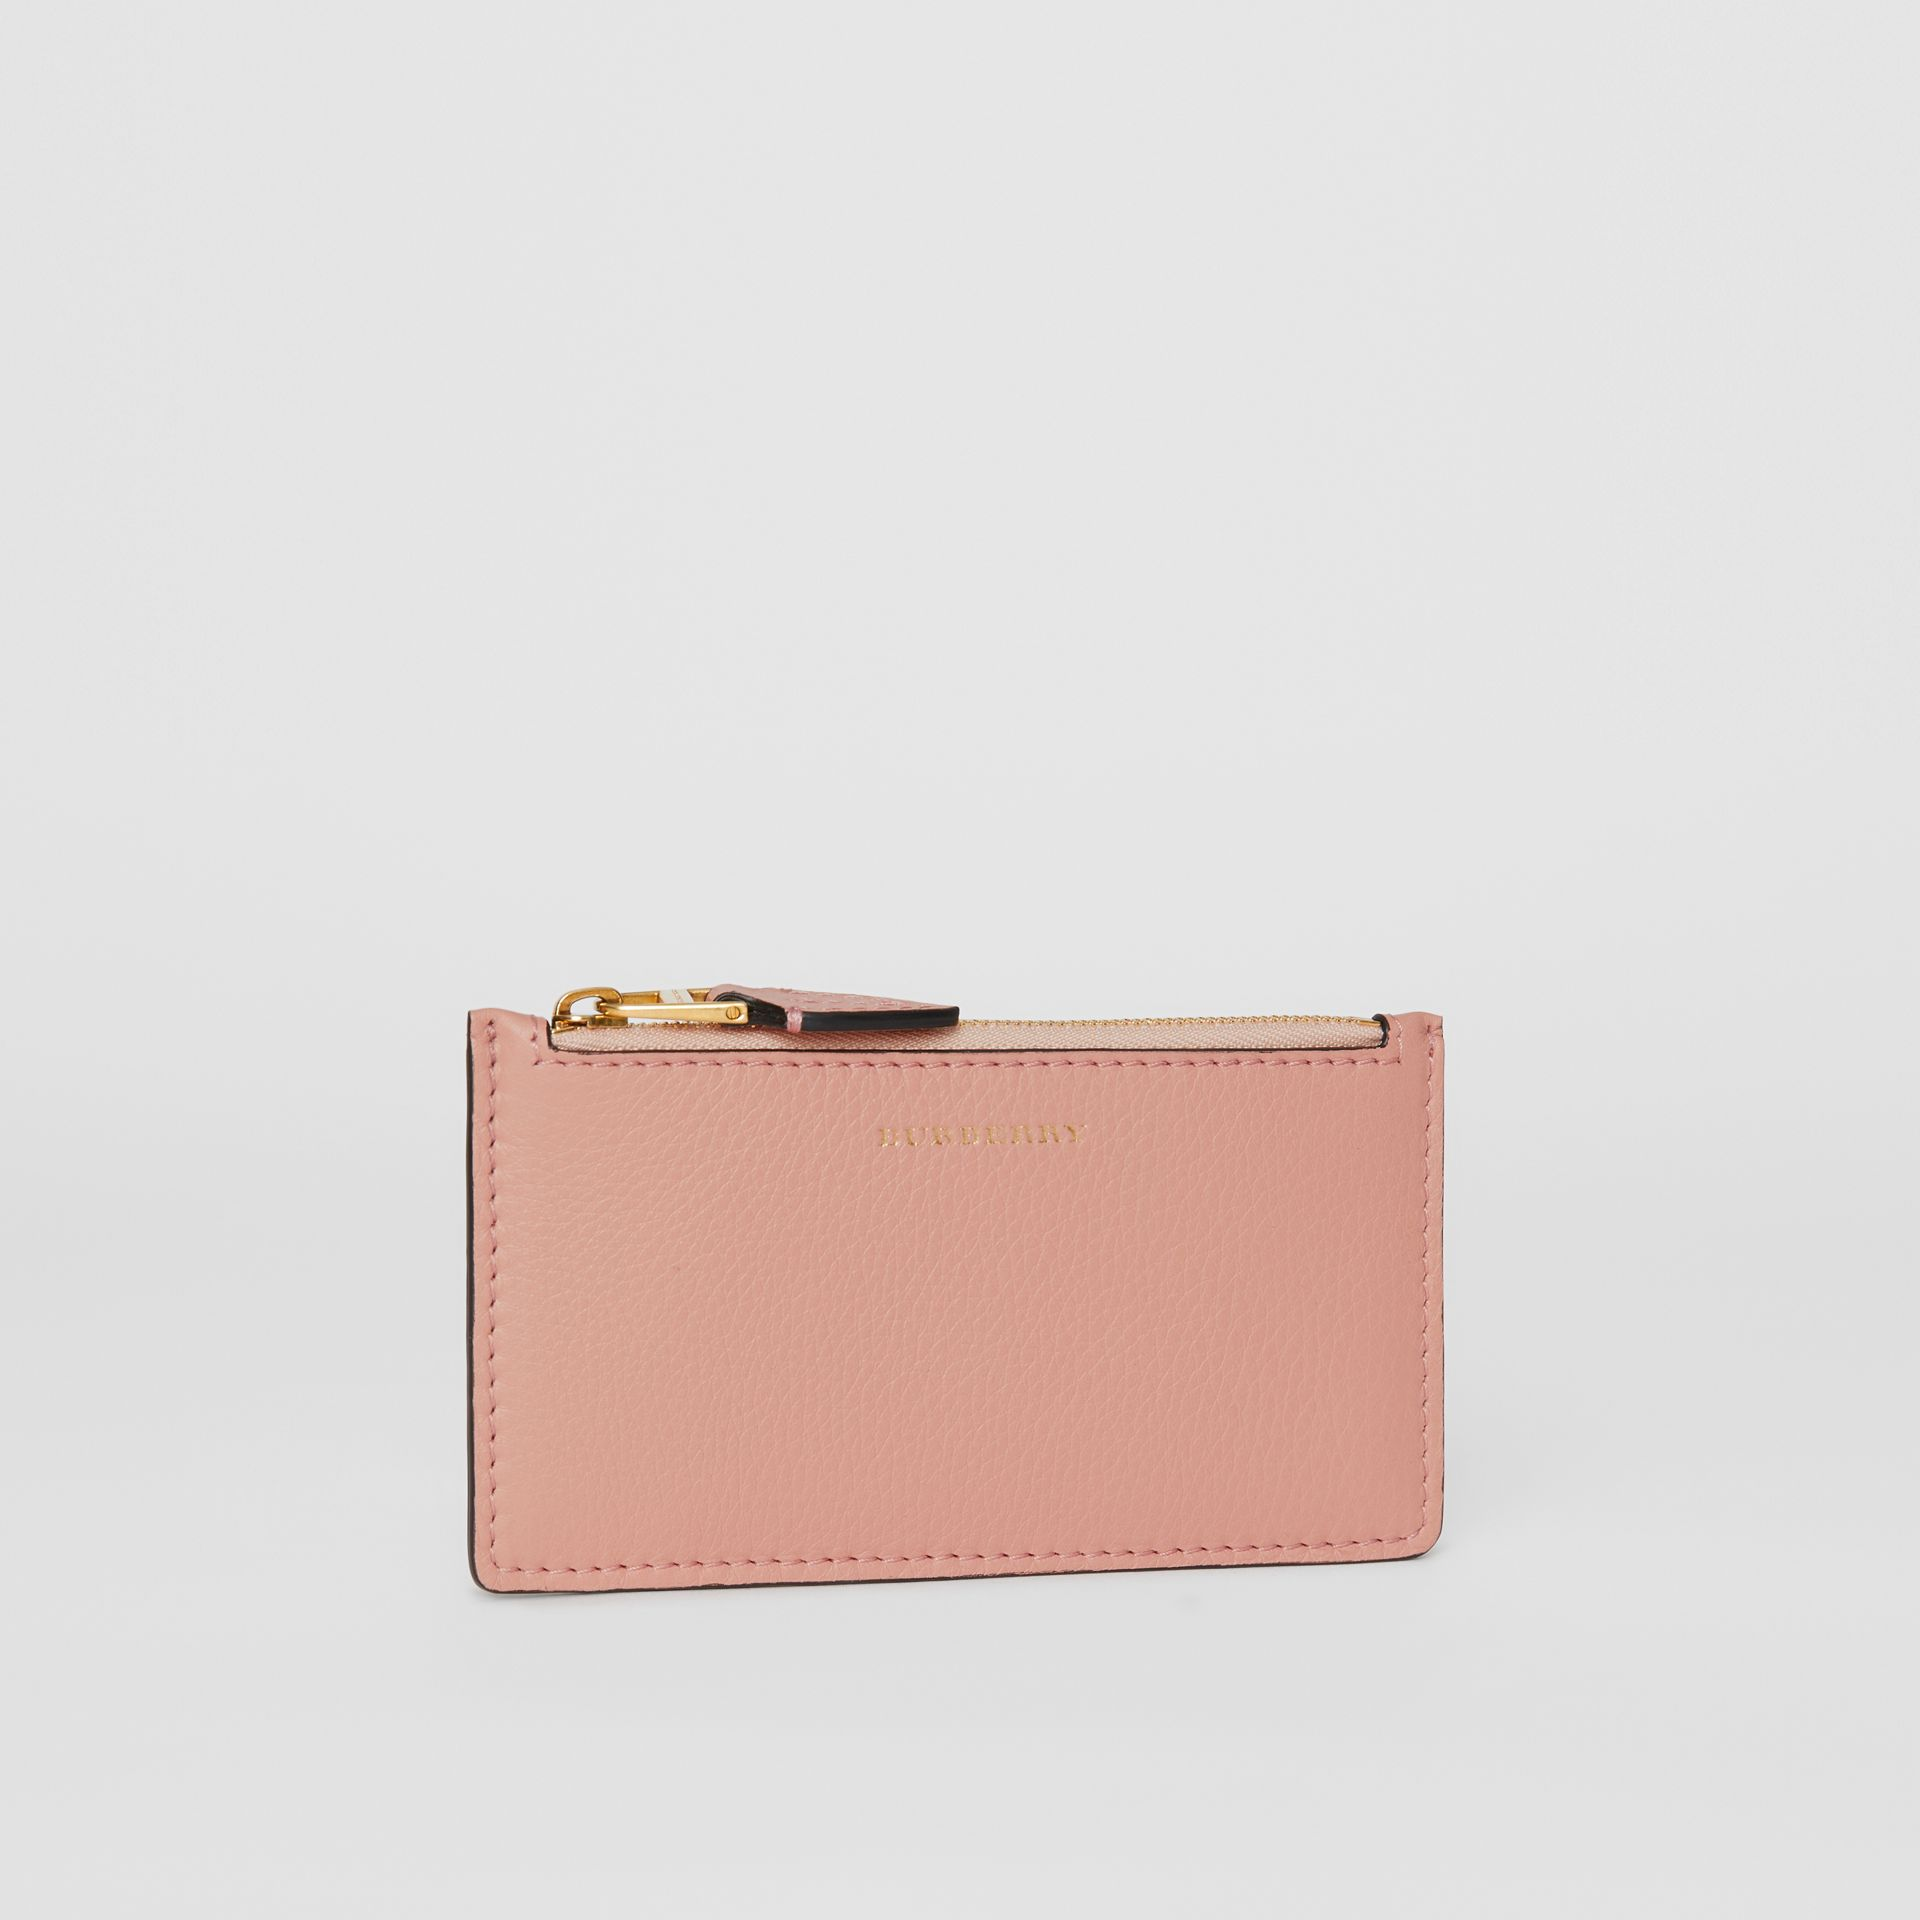 Two-tone Leather Zip Card Case in Ash Rose - Women | Burberry Singapore - gallery image 3